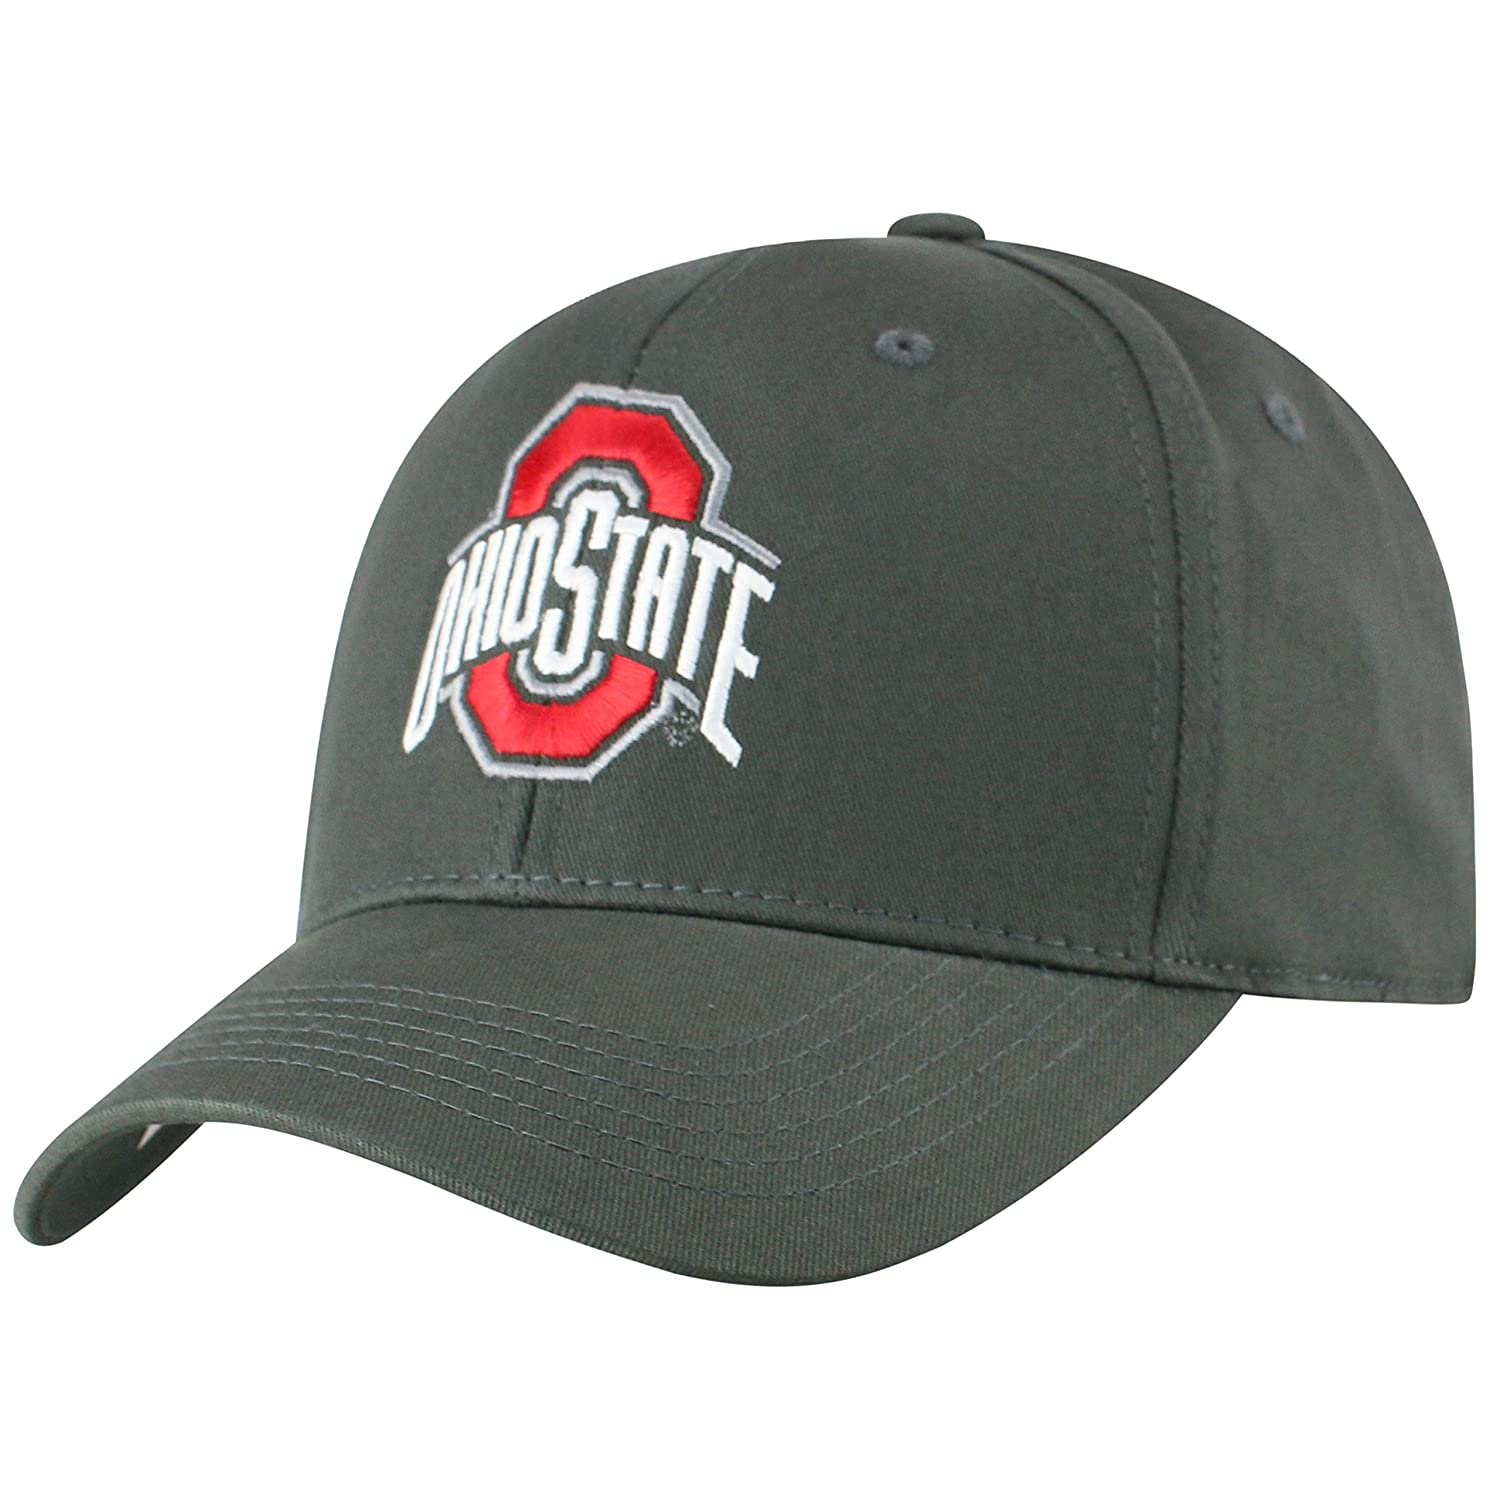 Top of the World NCAA Ohio State Buckeyes Men's Fitted Relaxed Fit Charcoal Icon Hat Charcoal